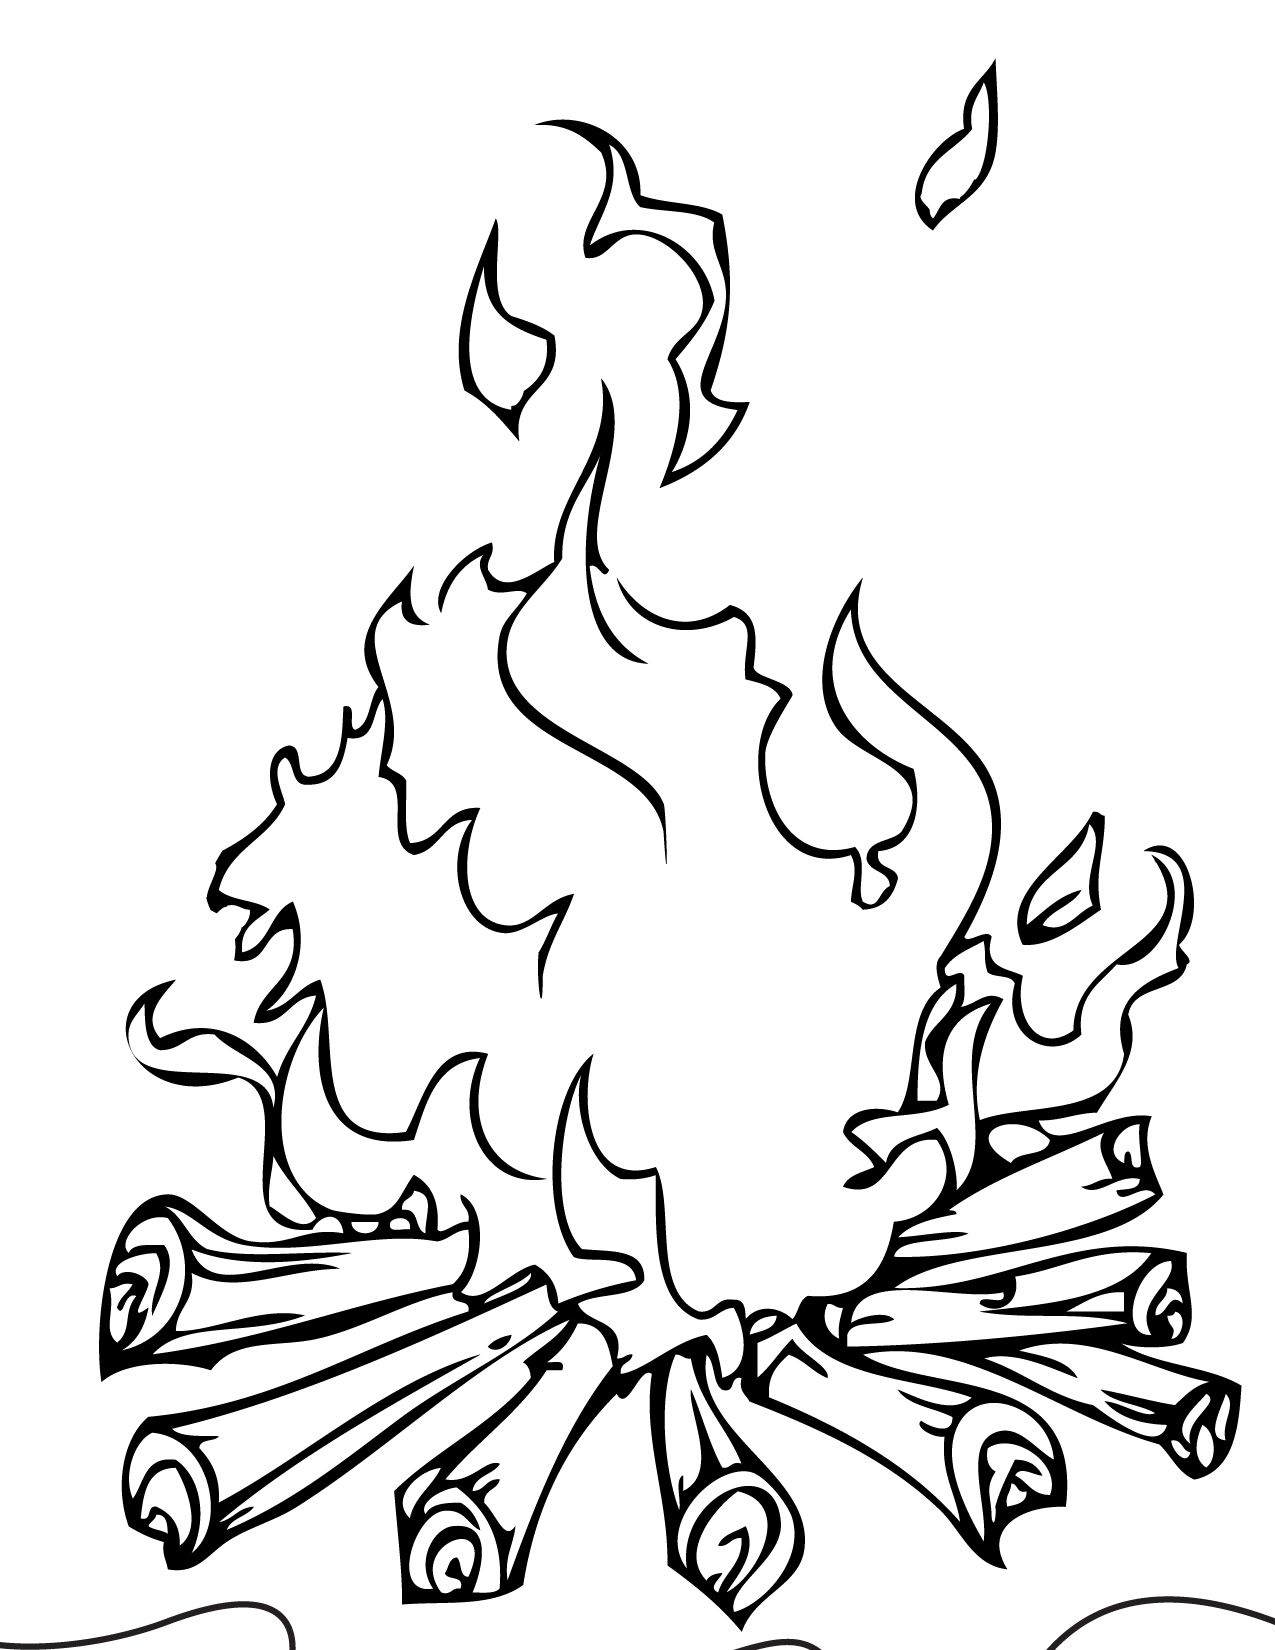 Related Image Camping Coloring Pages Fire Art Coloring Pages